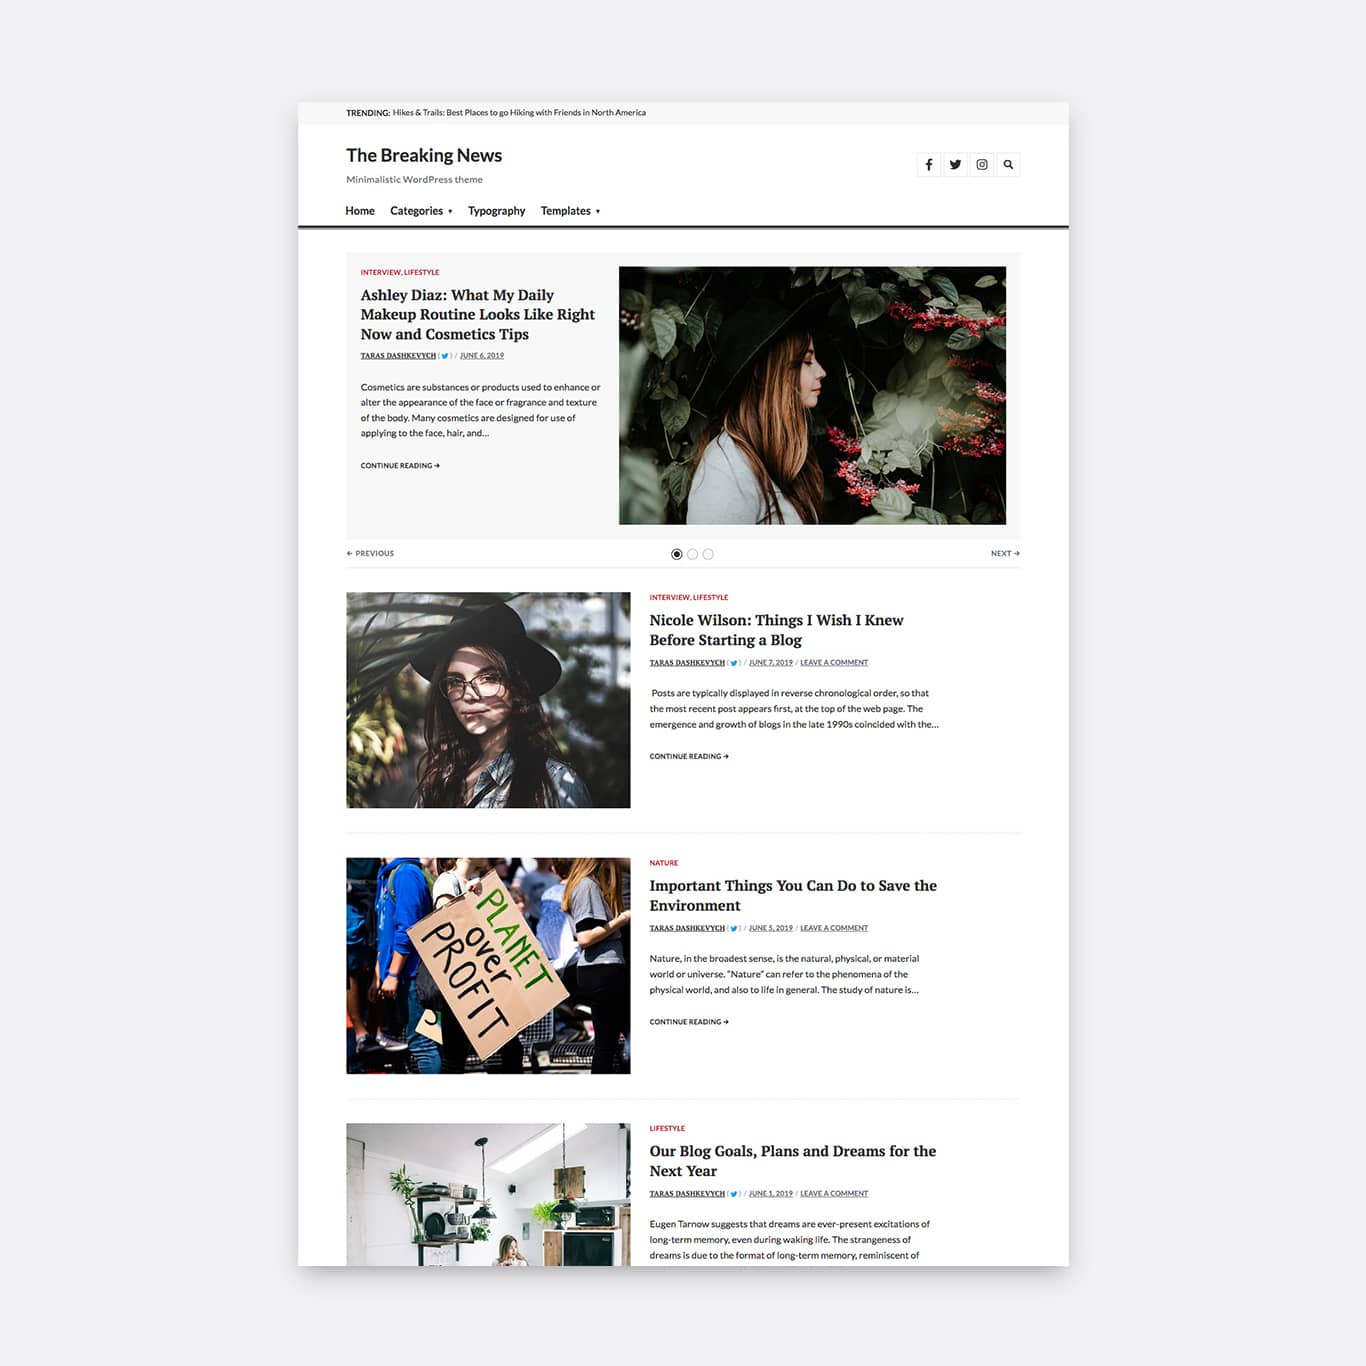 One column layout with an inactive sidebar and a vertical image orientation.